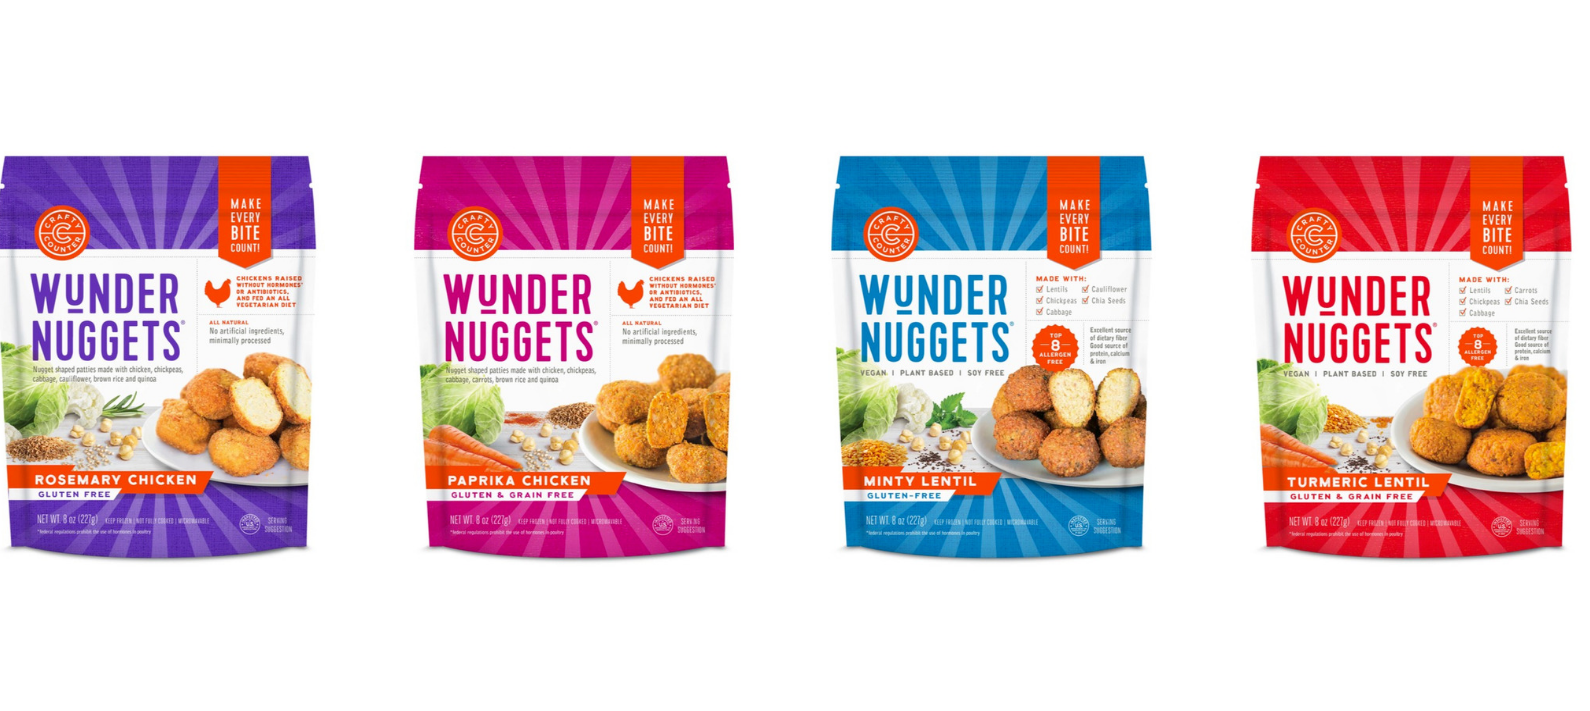 Design refresh! Plus the launch of new grain-free Wundernuggets